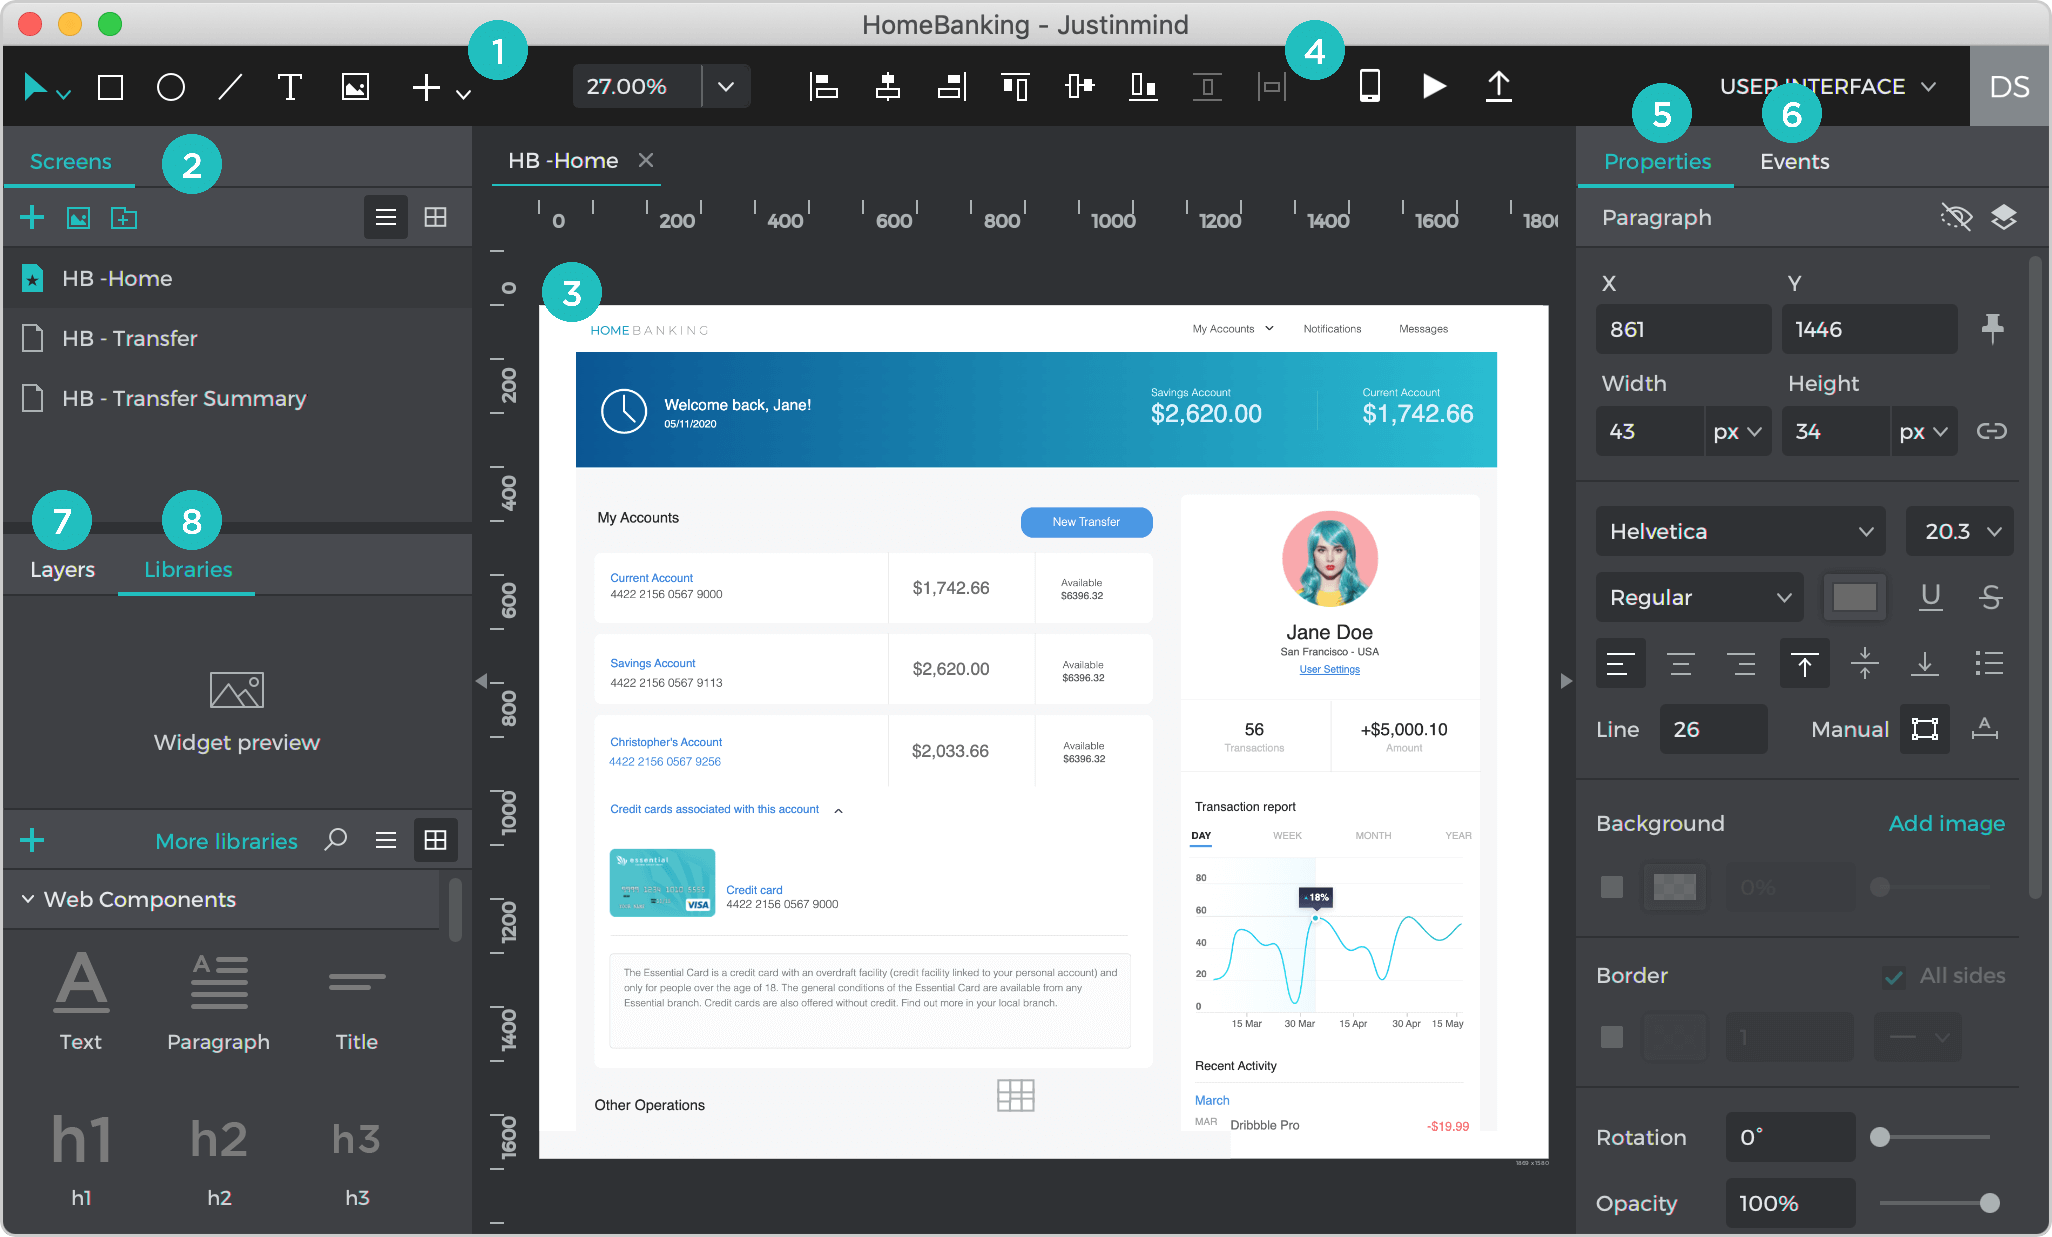 UI Overview of Justinmind